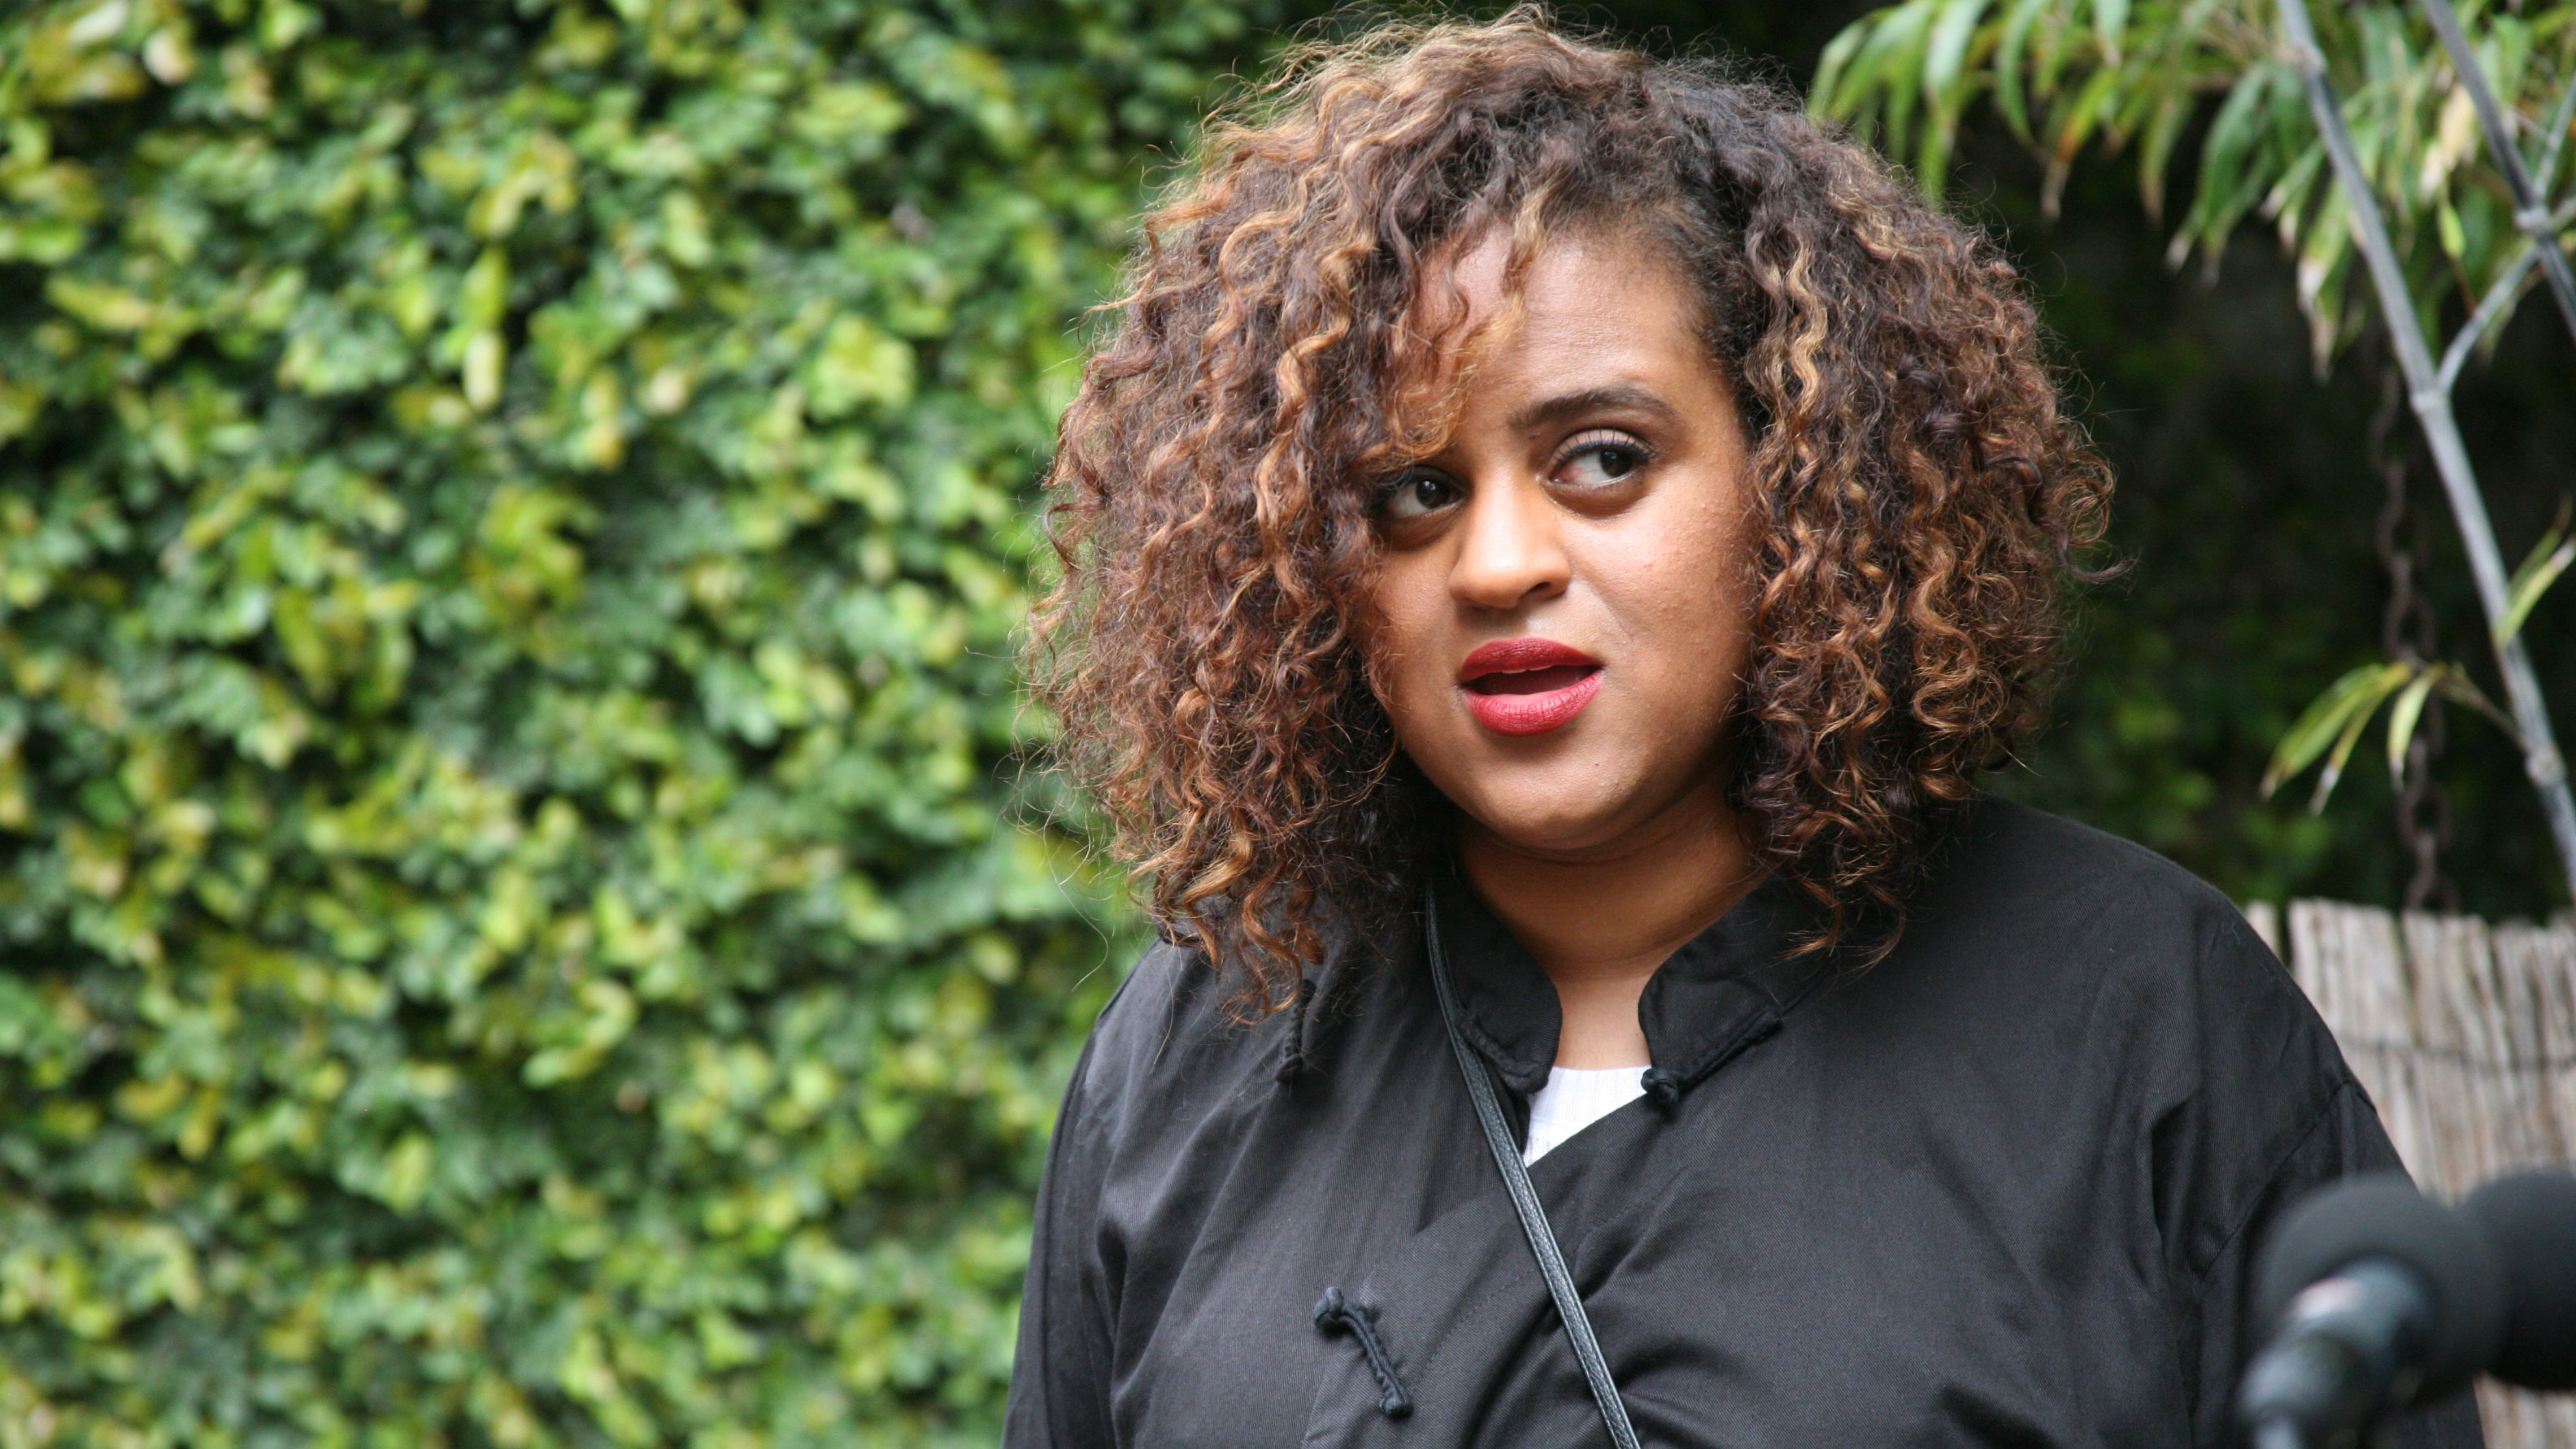 FUV at SXSW: Exclusive performances from Austin, including Seinabo Sey at Hotel San Jose.